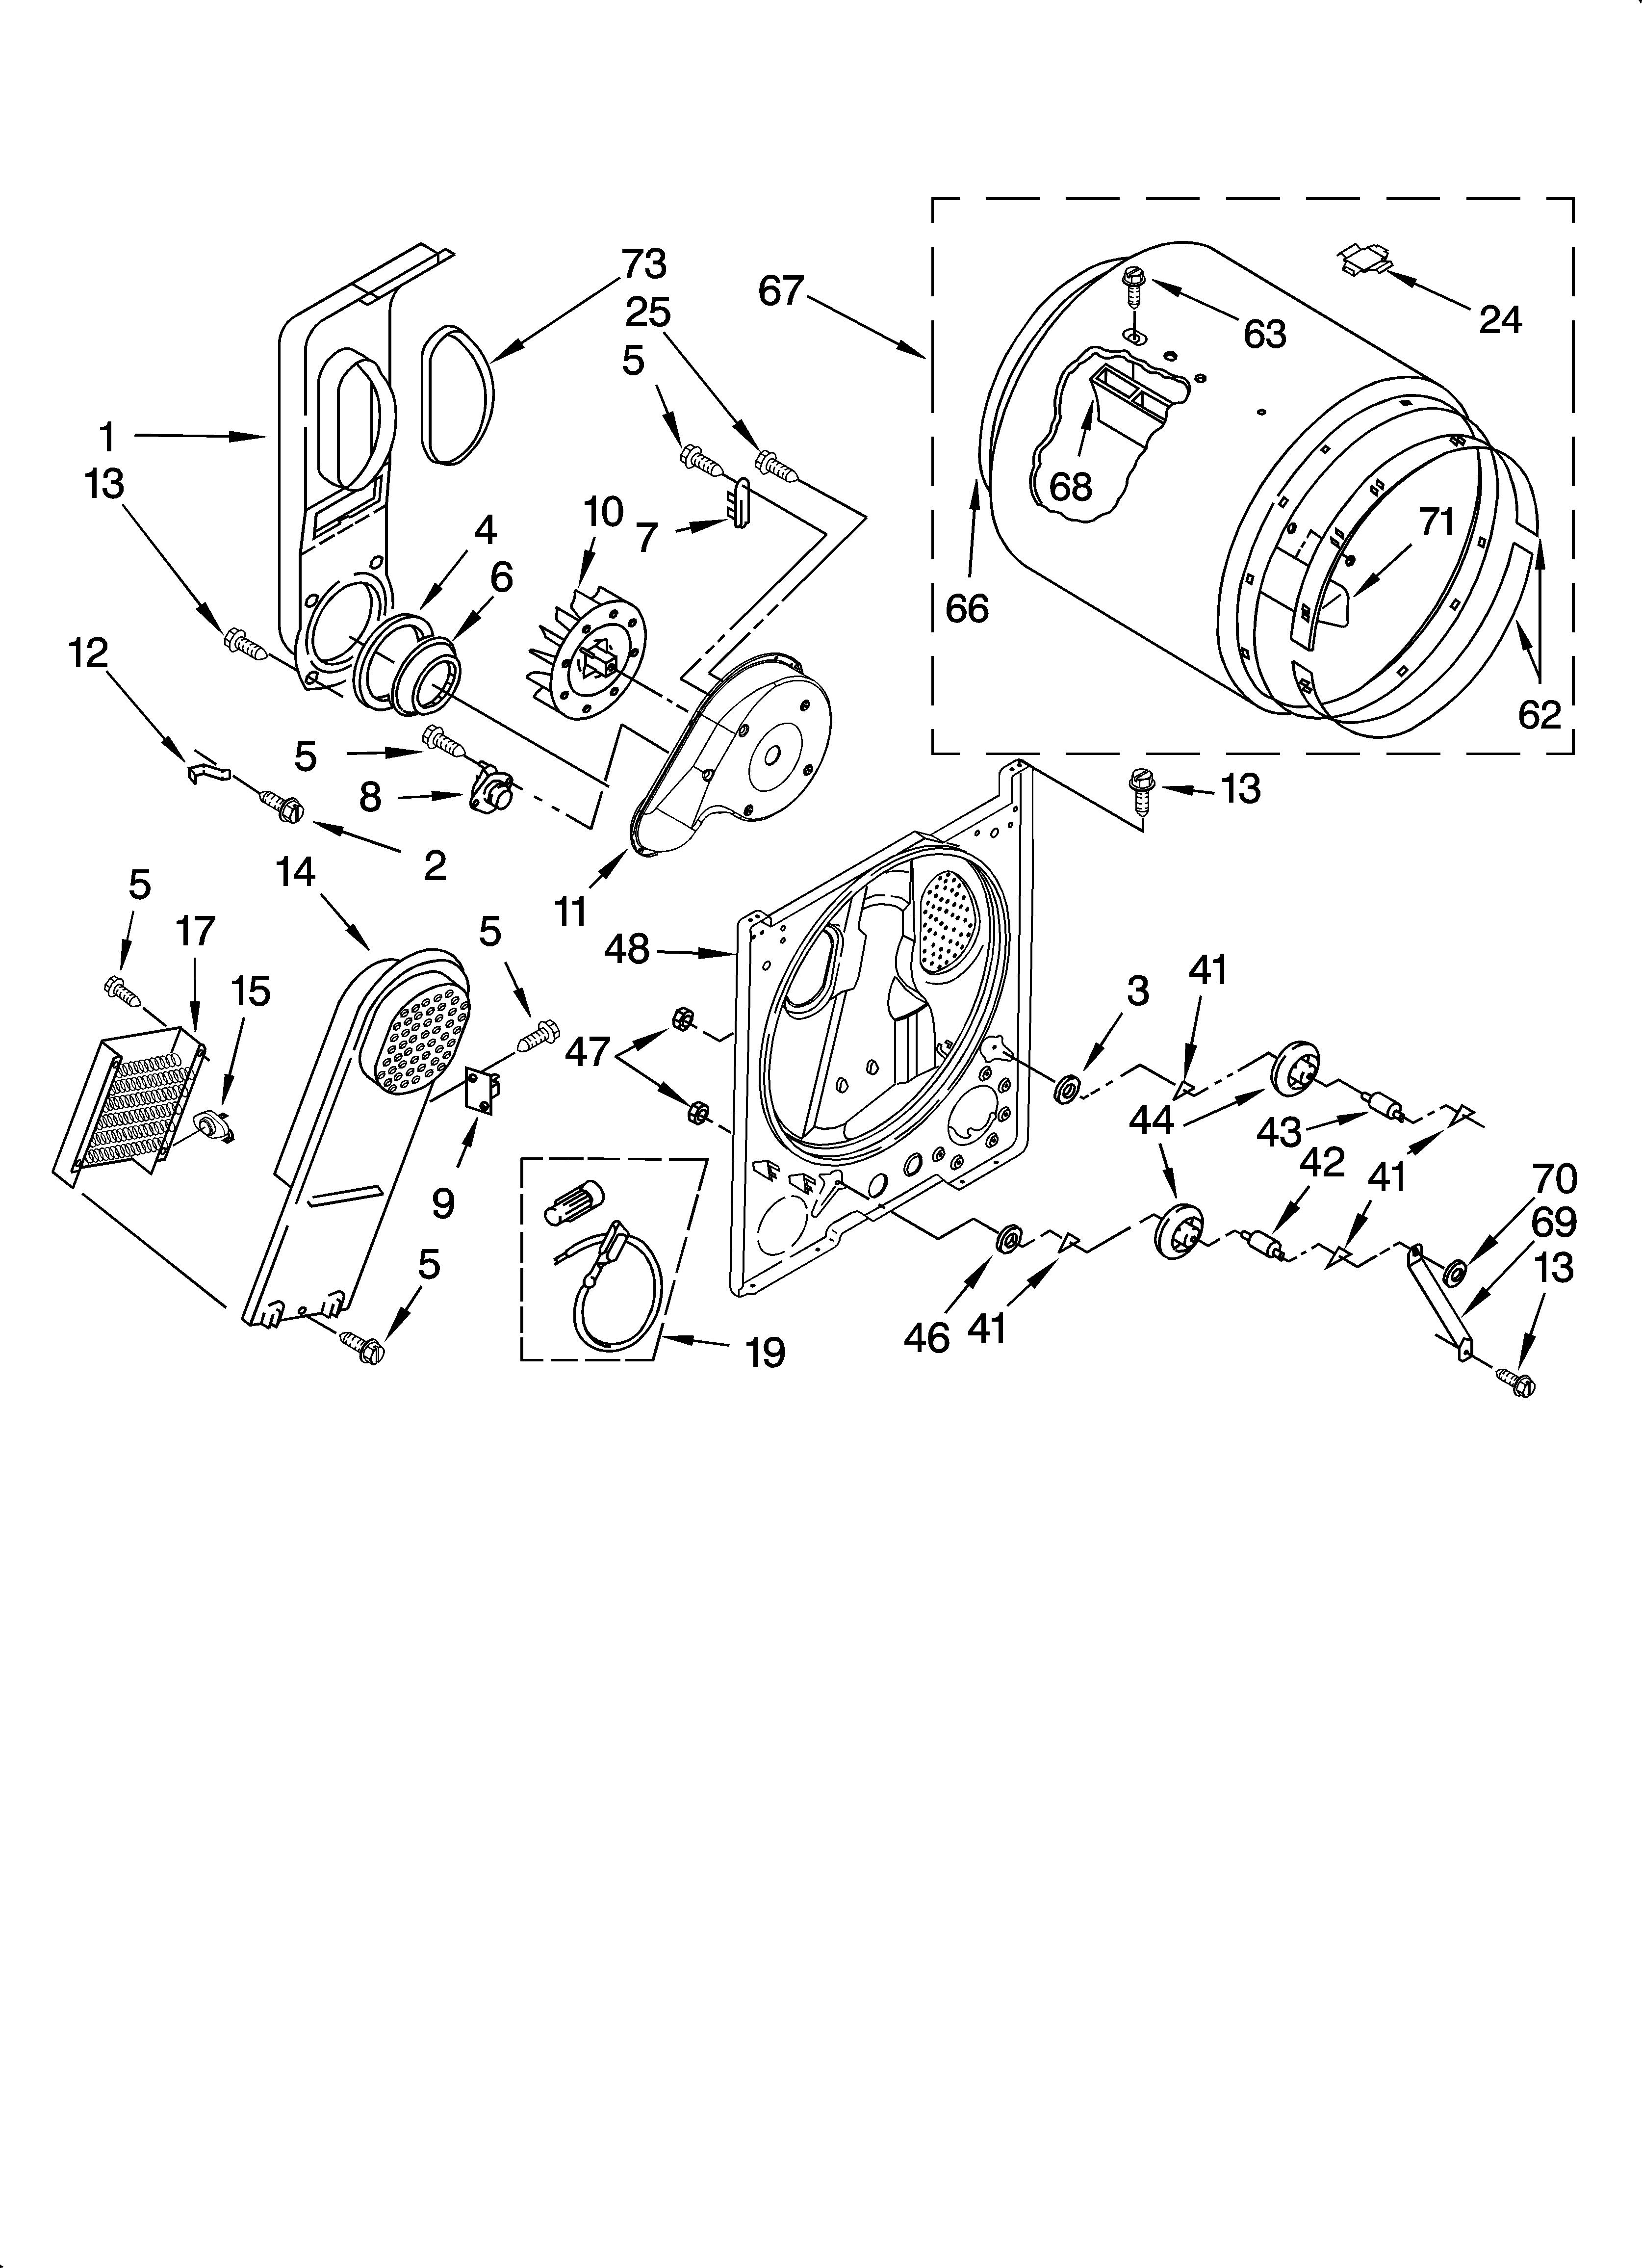 BULKHEAD PARTS, OPTIONAL PARTS (NOT INCLUDED) Diagram